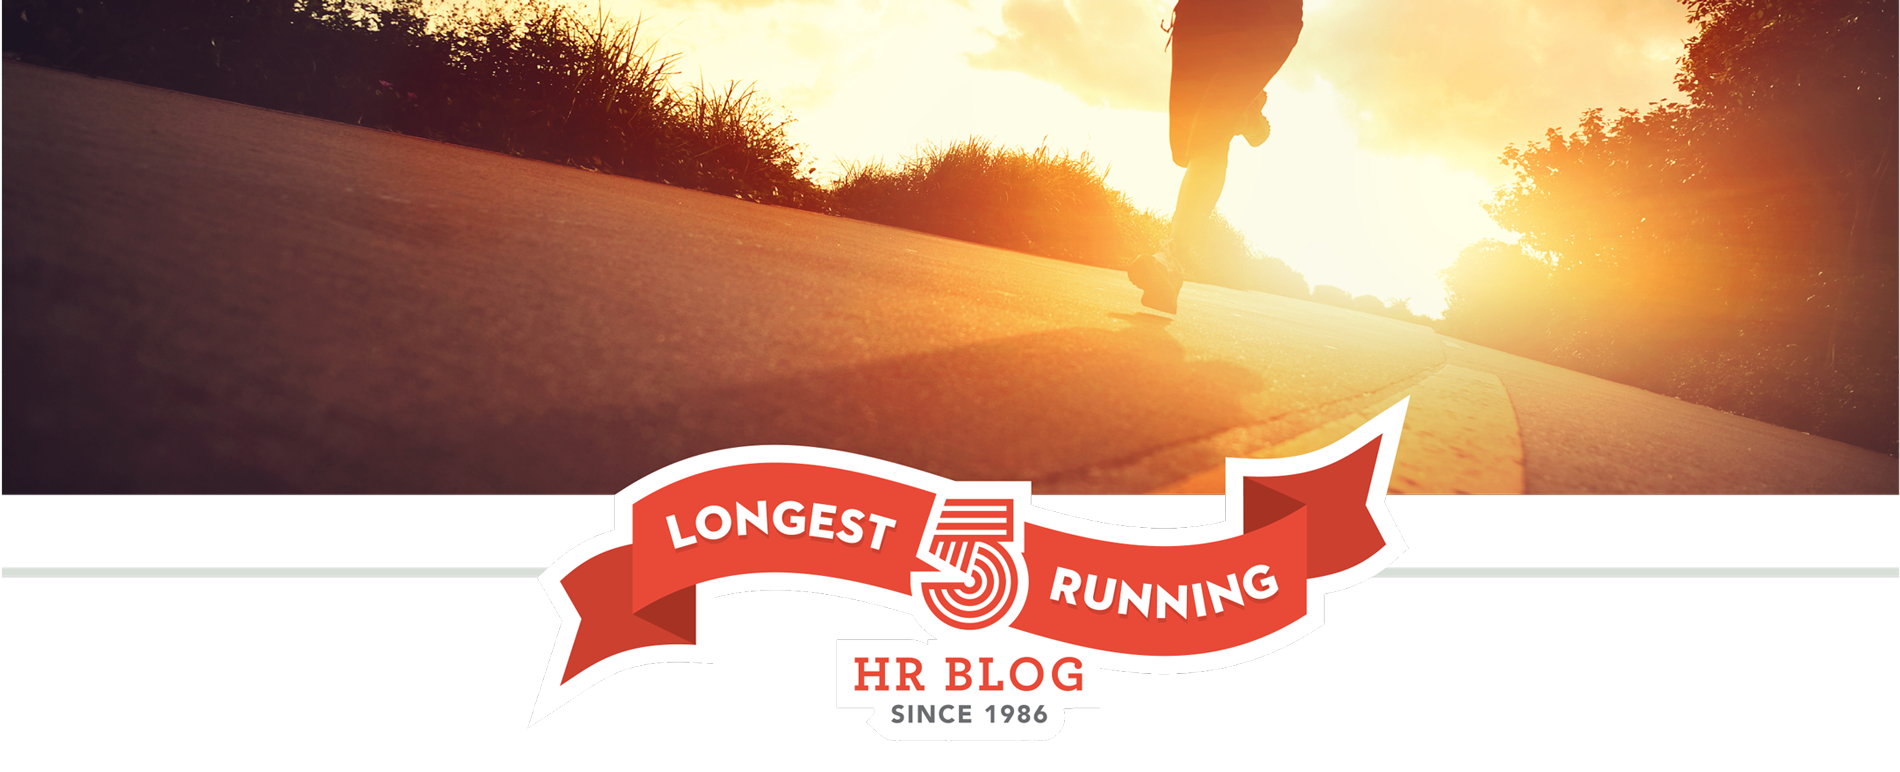 Longest Running HR Blog